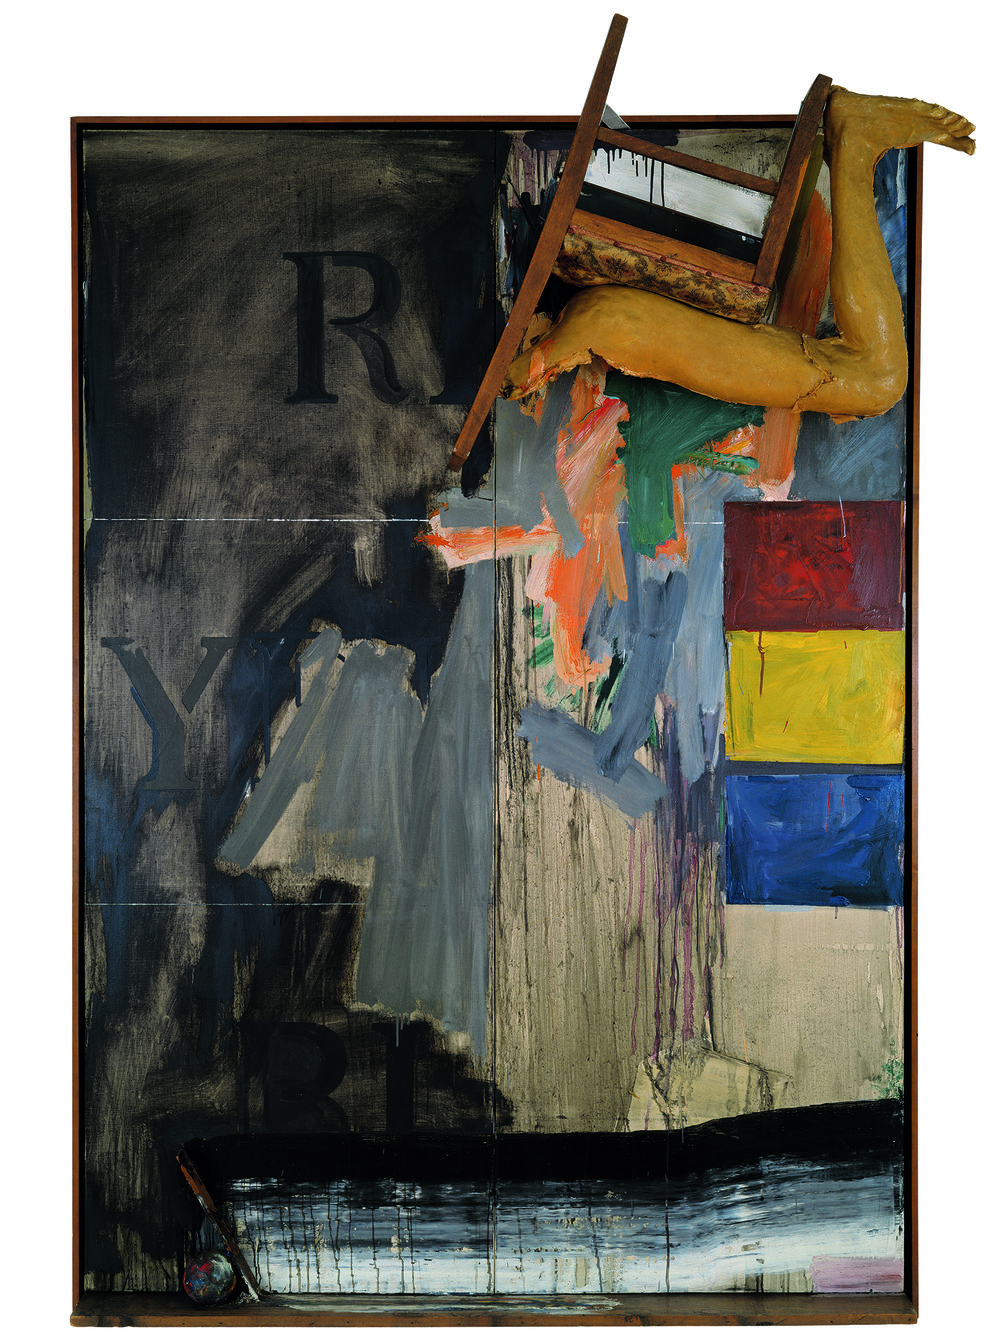 The Broad Museum: Jasper Johns, Watchman, 1964, oil on canvas with objects (two panels), 85 x 60 1/4 in., Art © Jasper Johns/Licensed by VAGA, New York, NY.